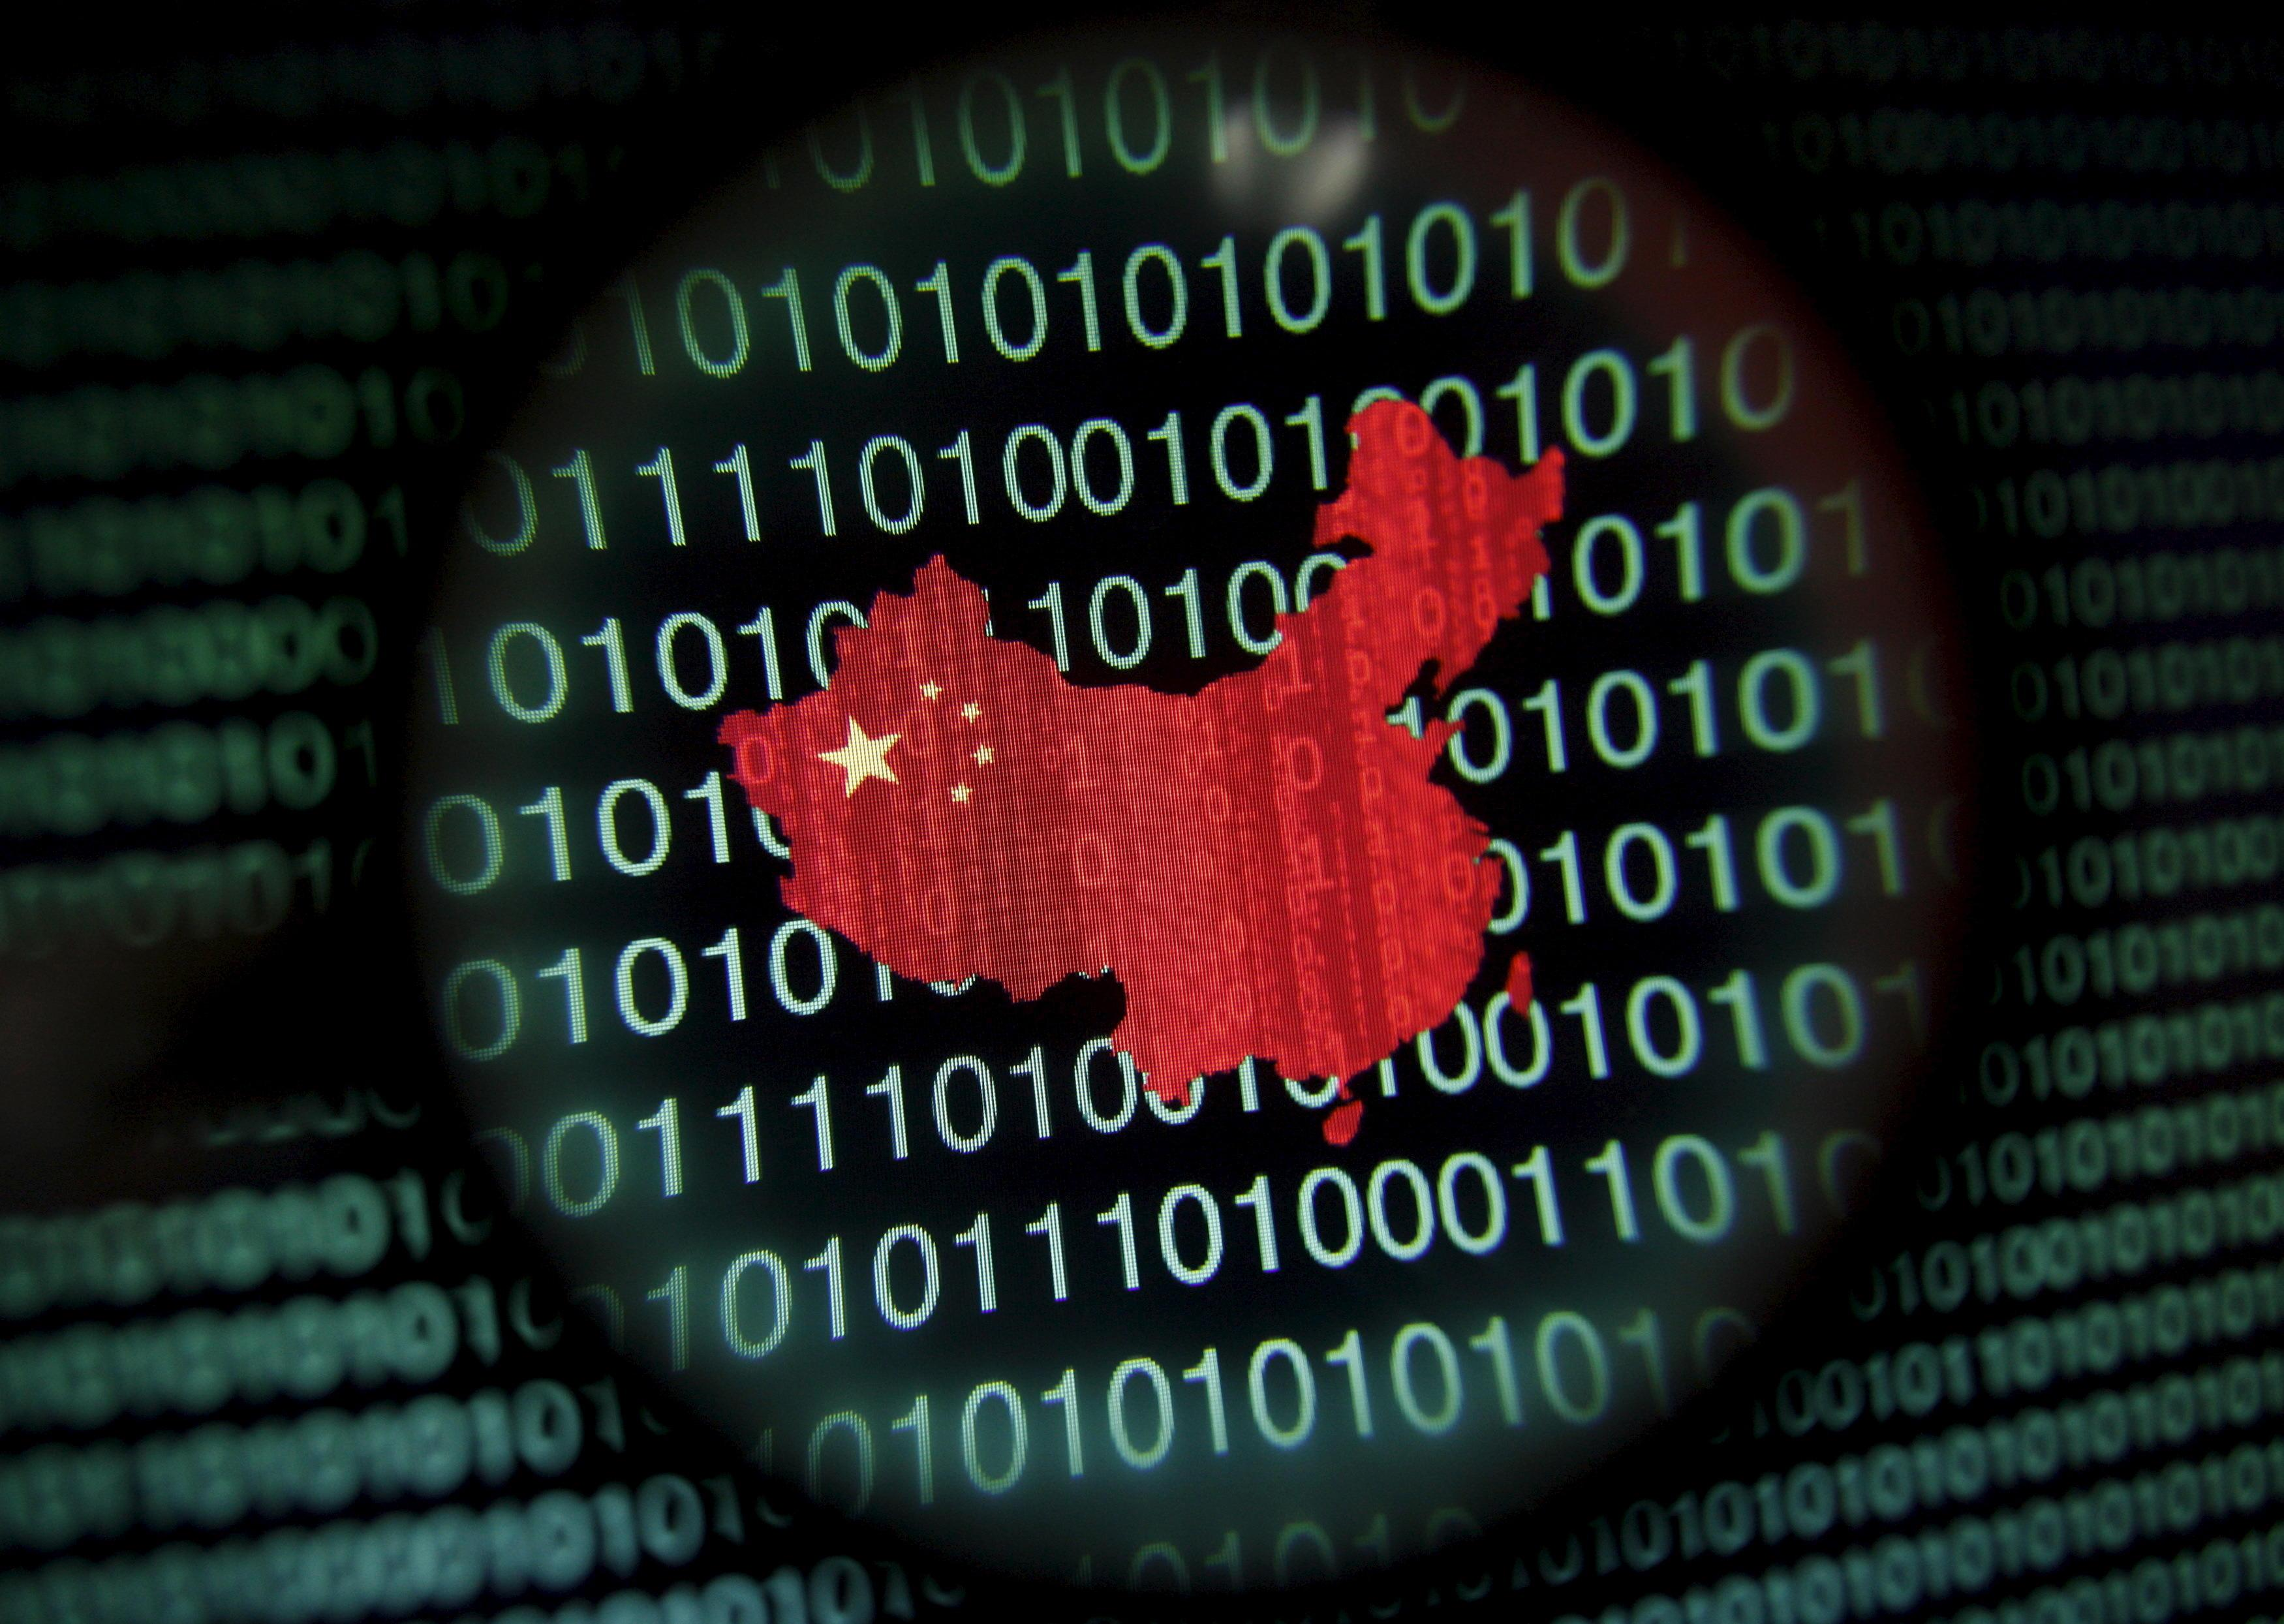 US may hit China with sanctions over alleged cybertheft